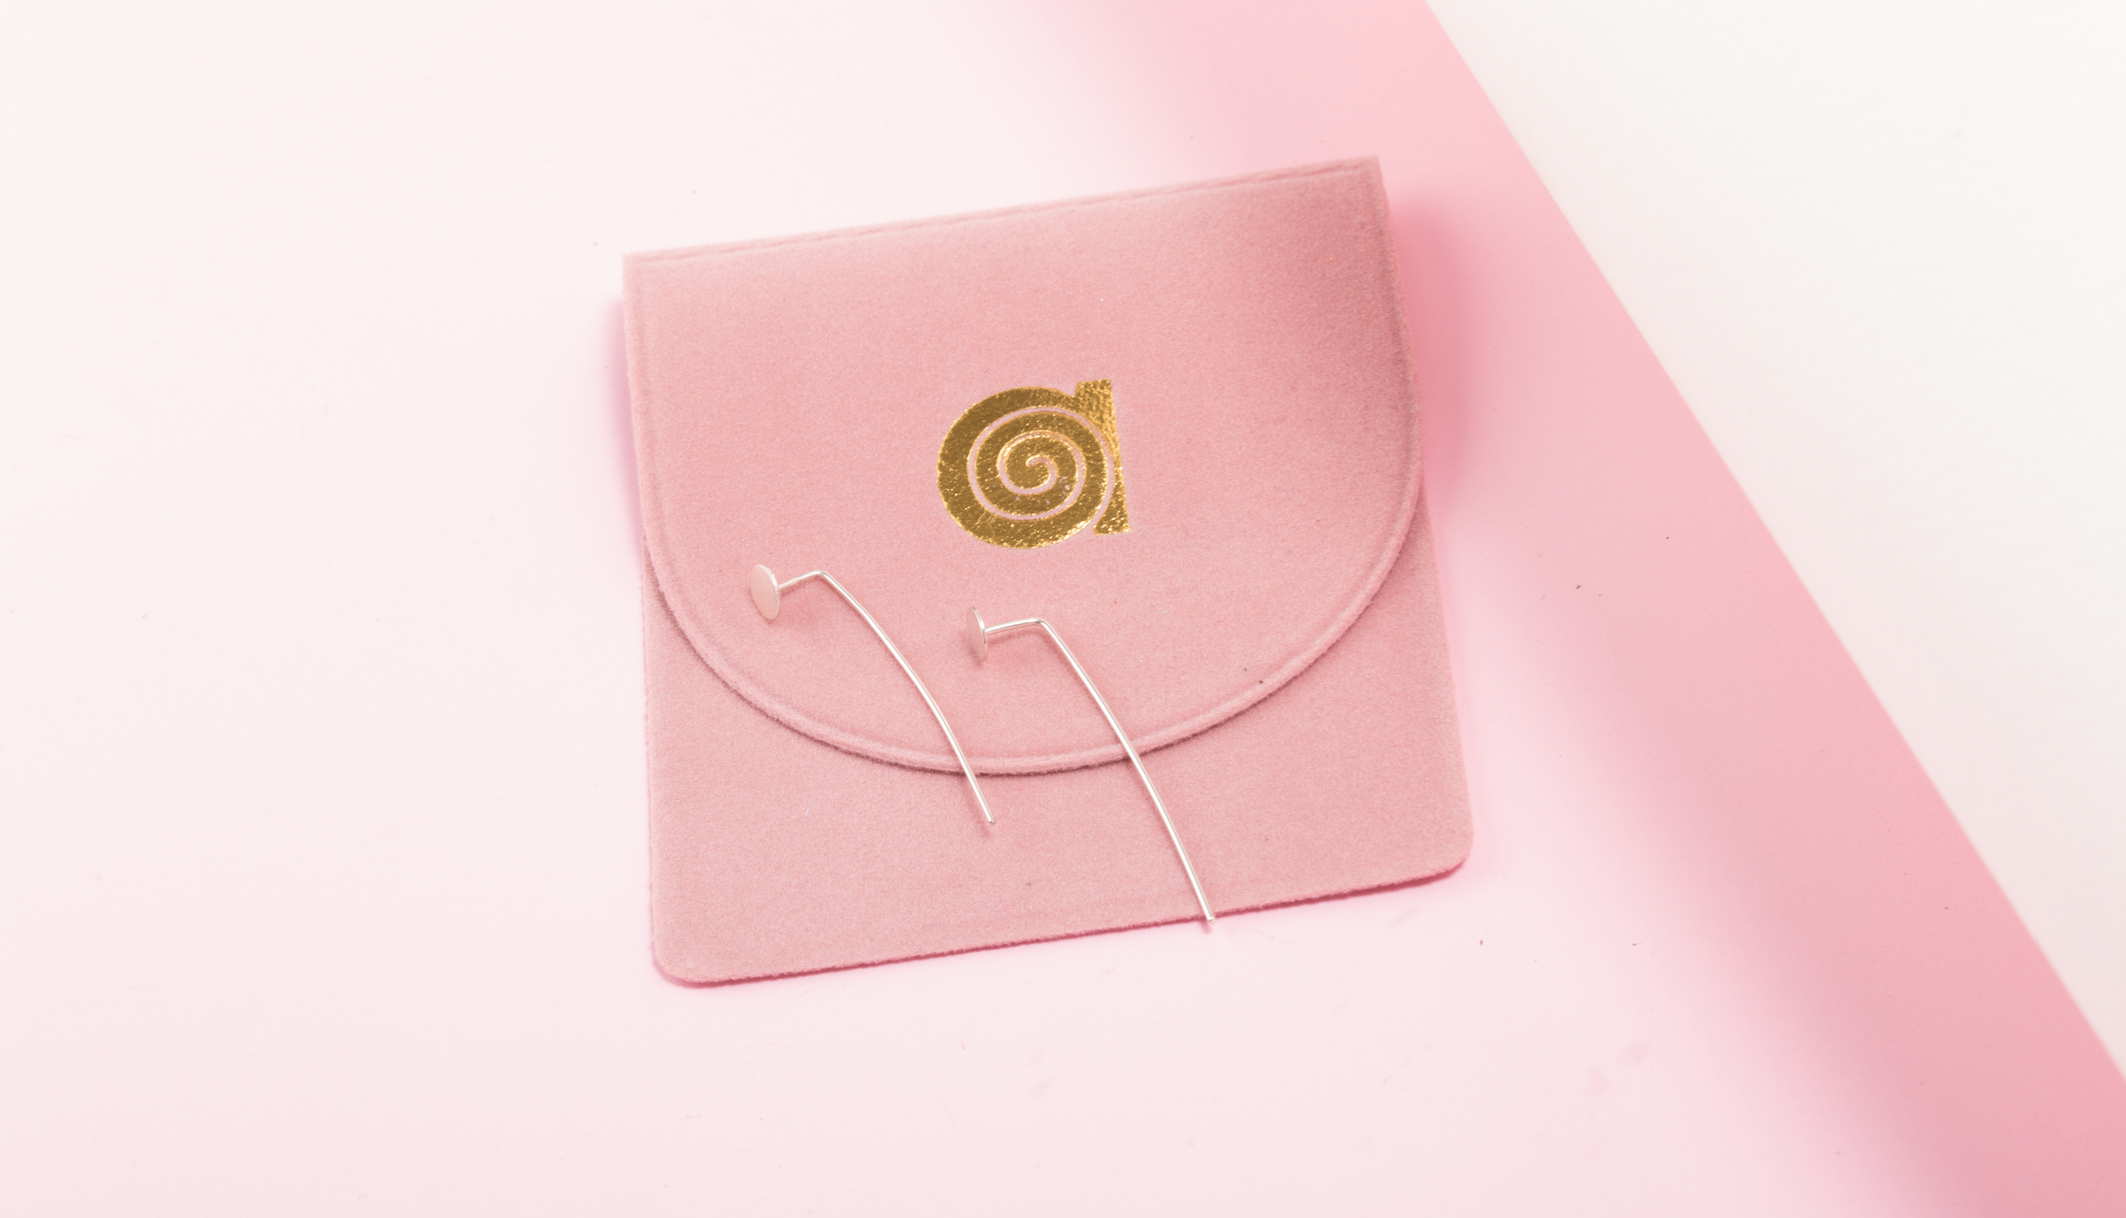 Comet Tails on pink wallet